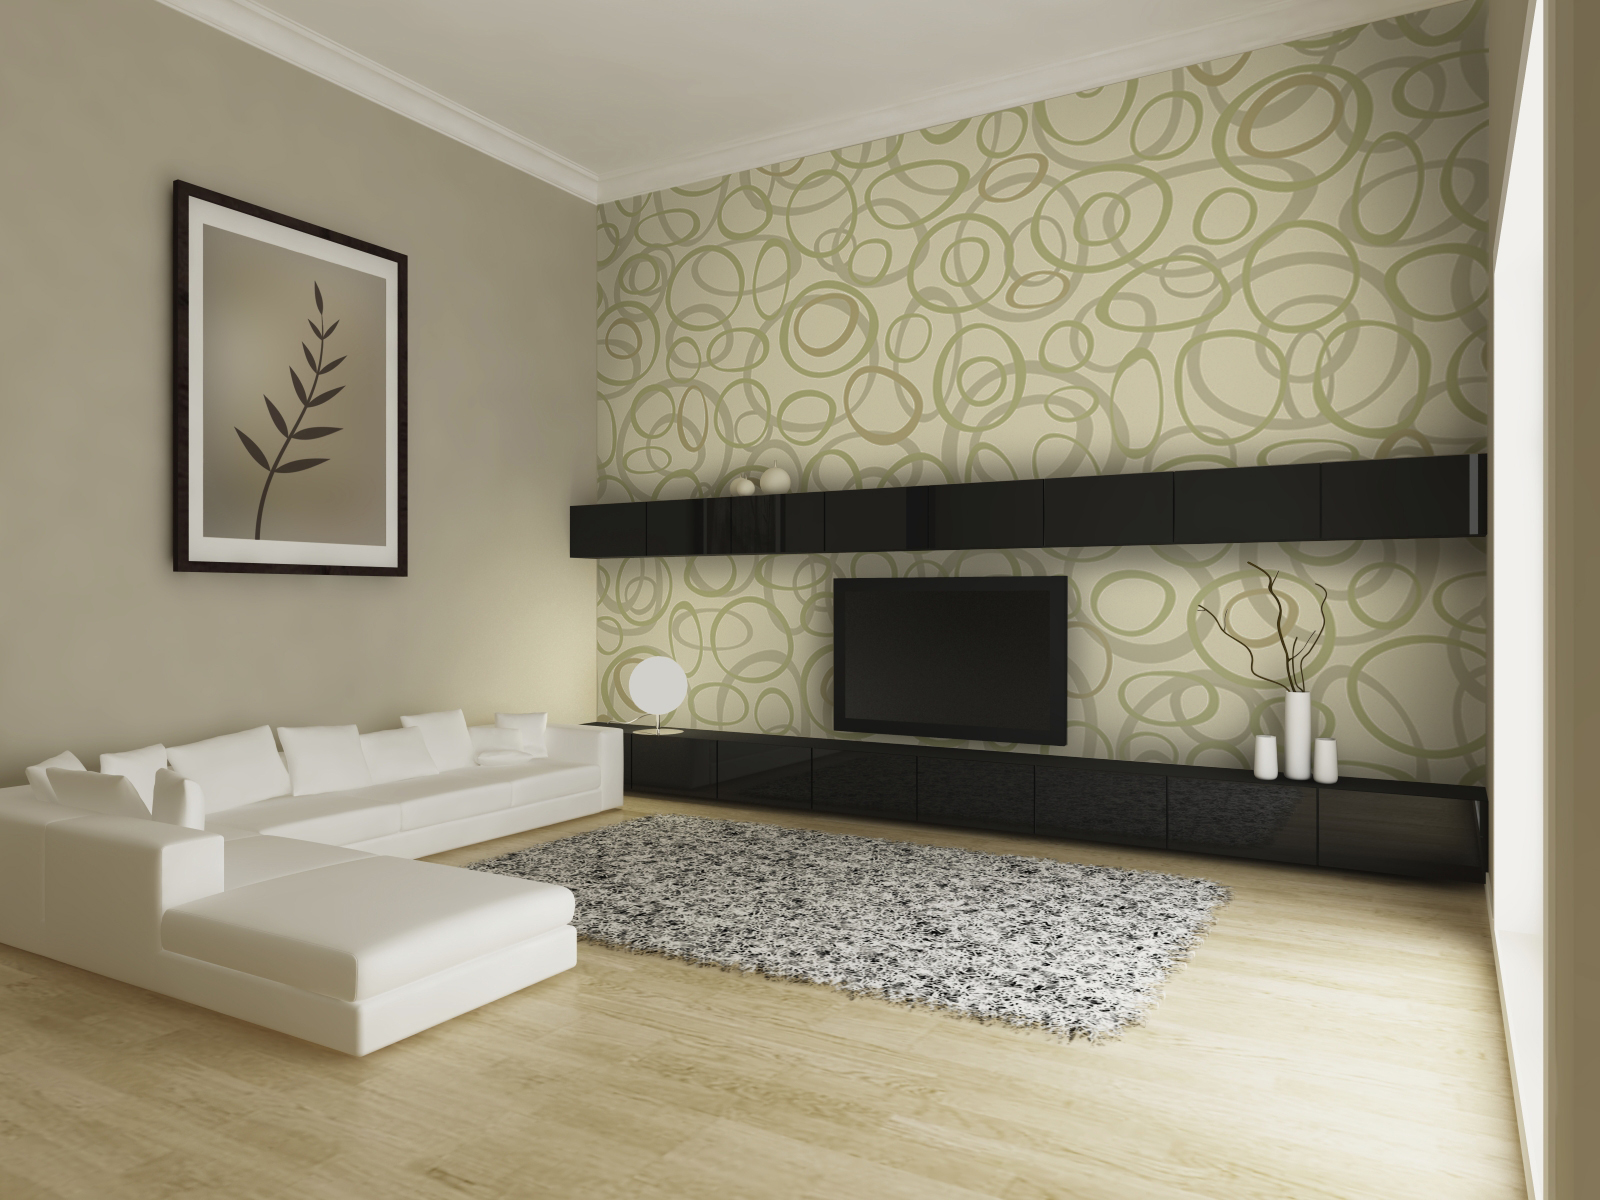 Interior design wallpaper 1600x1200 81460 for What is interior design